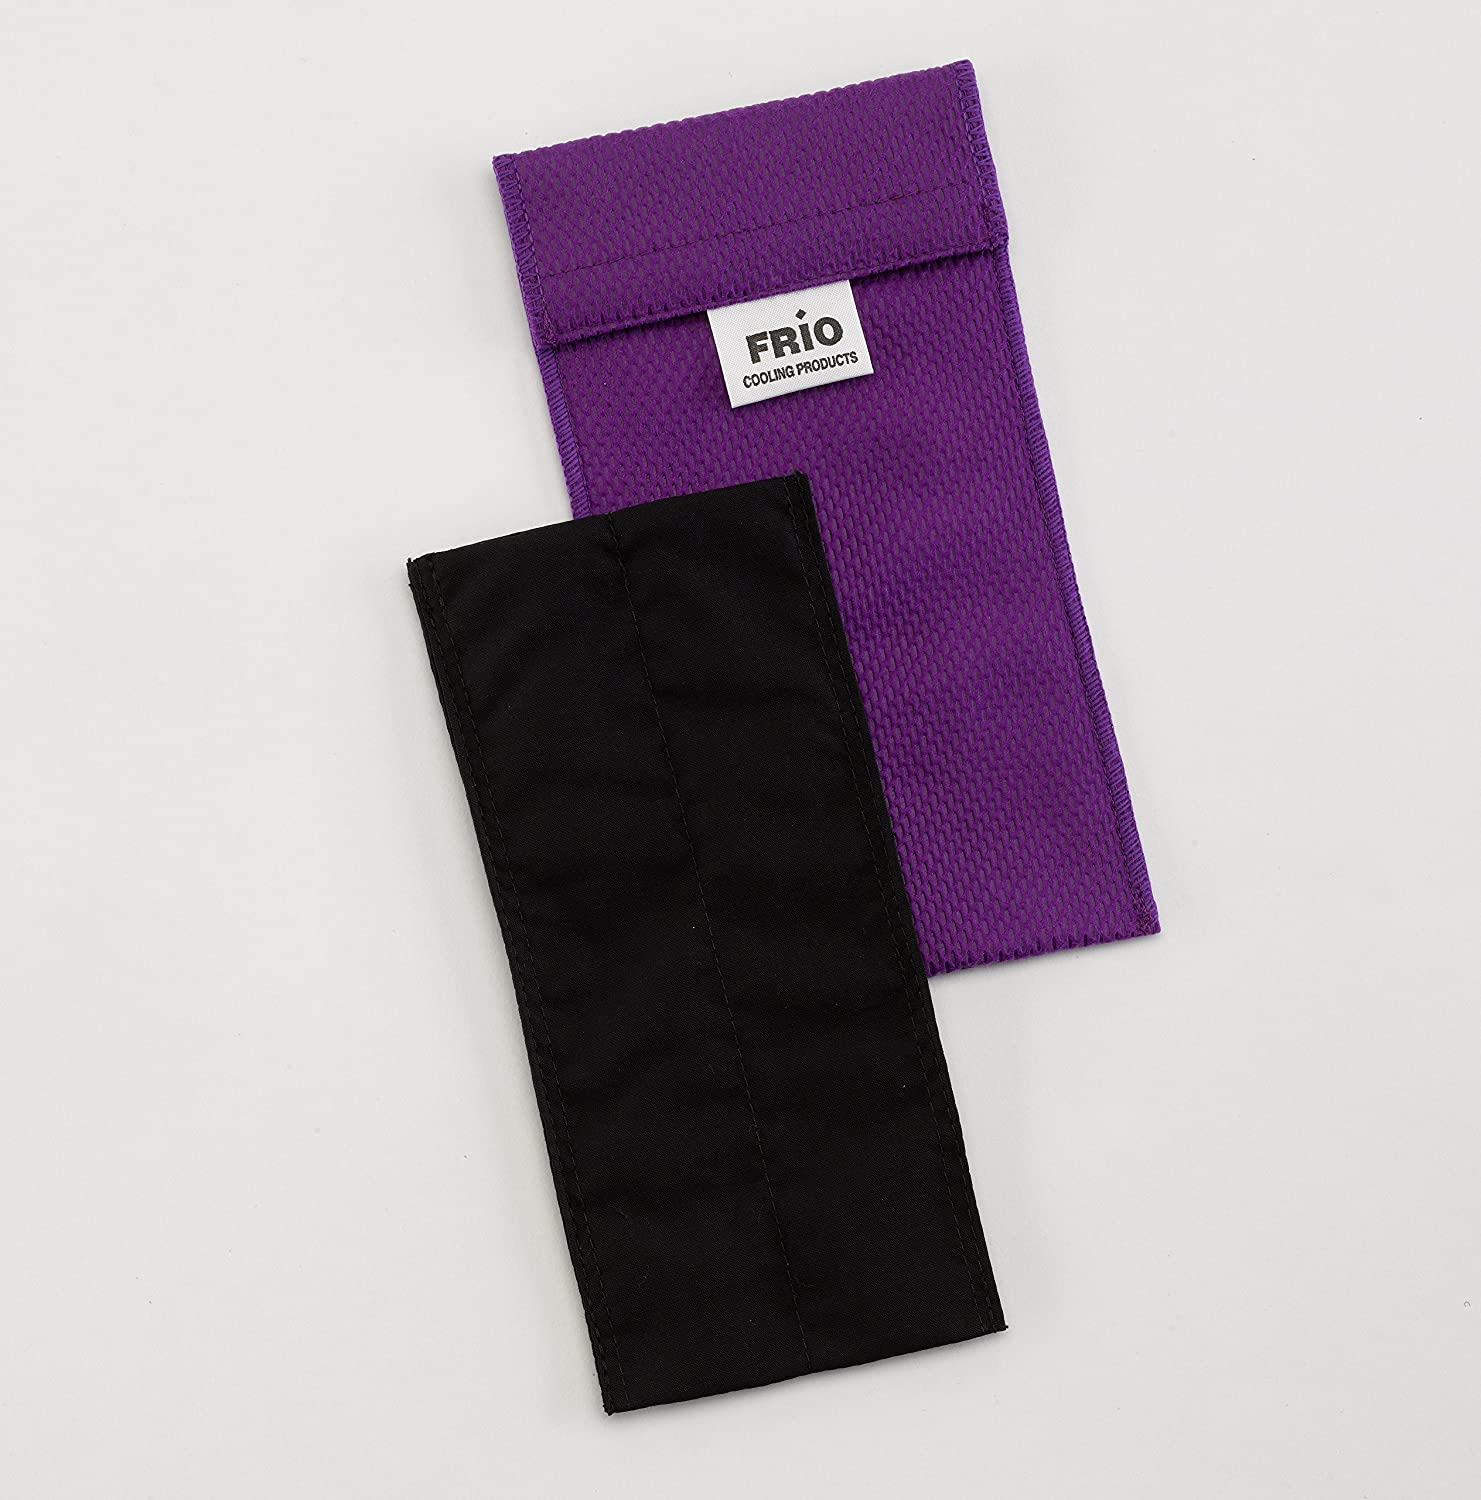 FRIO Insulin Cooling Case Duo Wallet, Purple